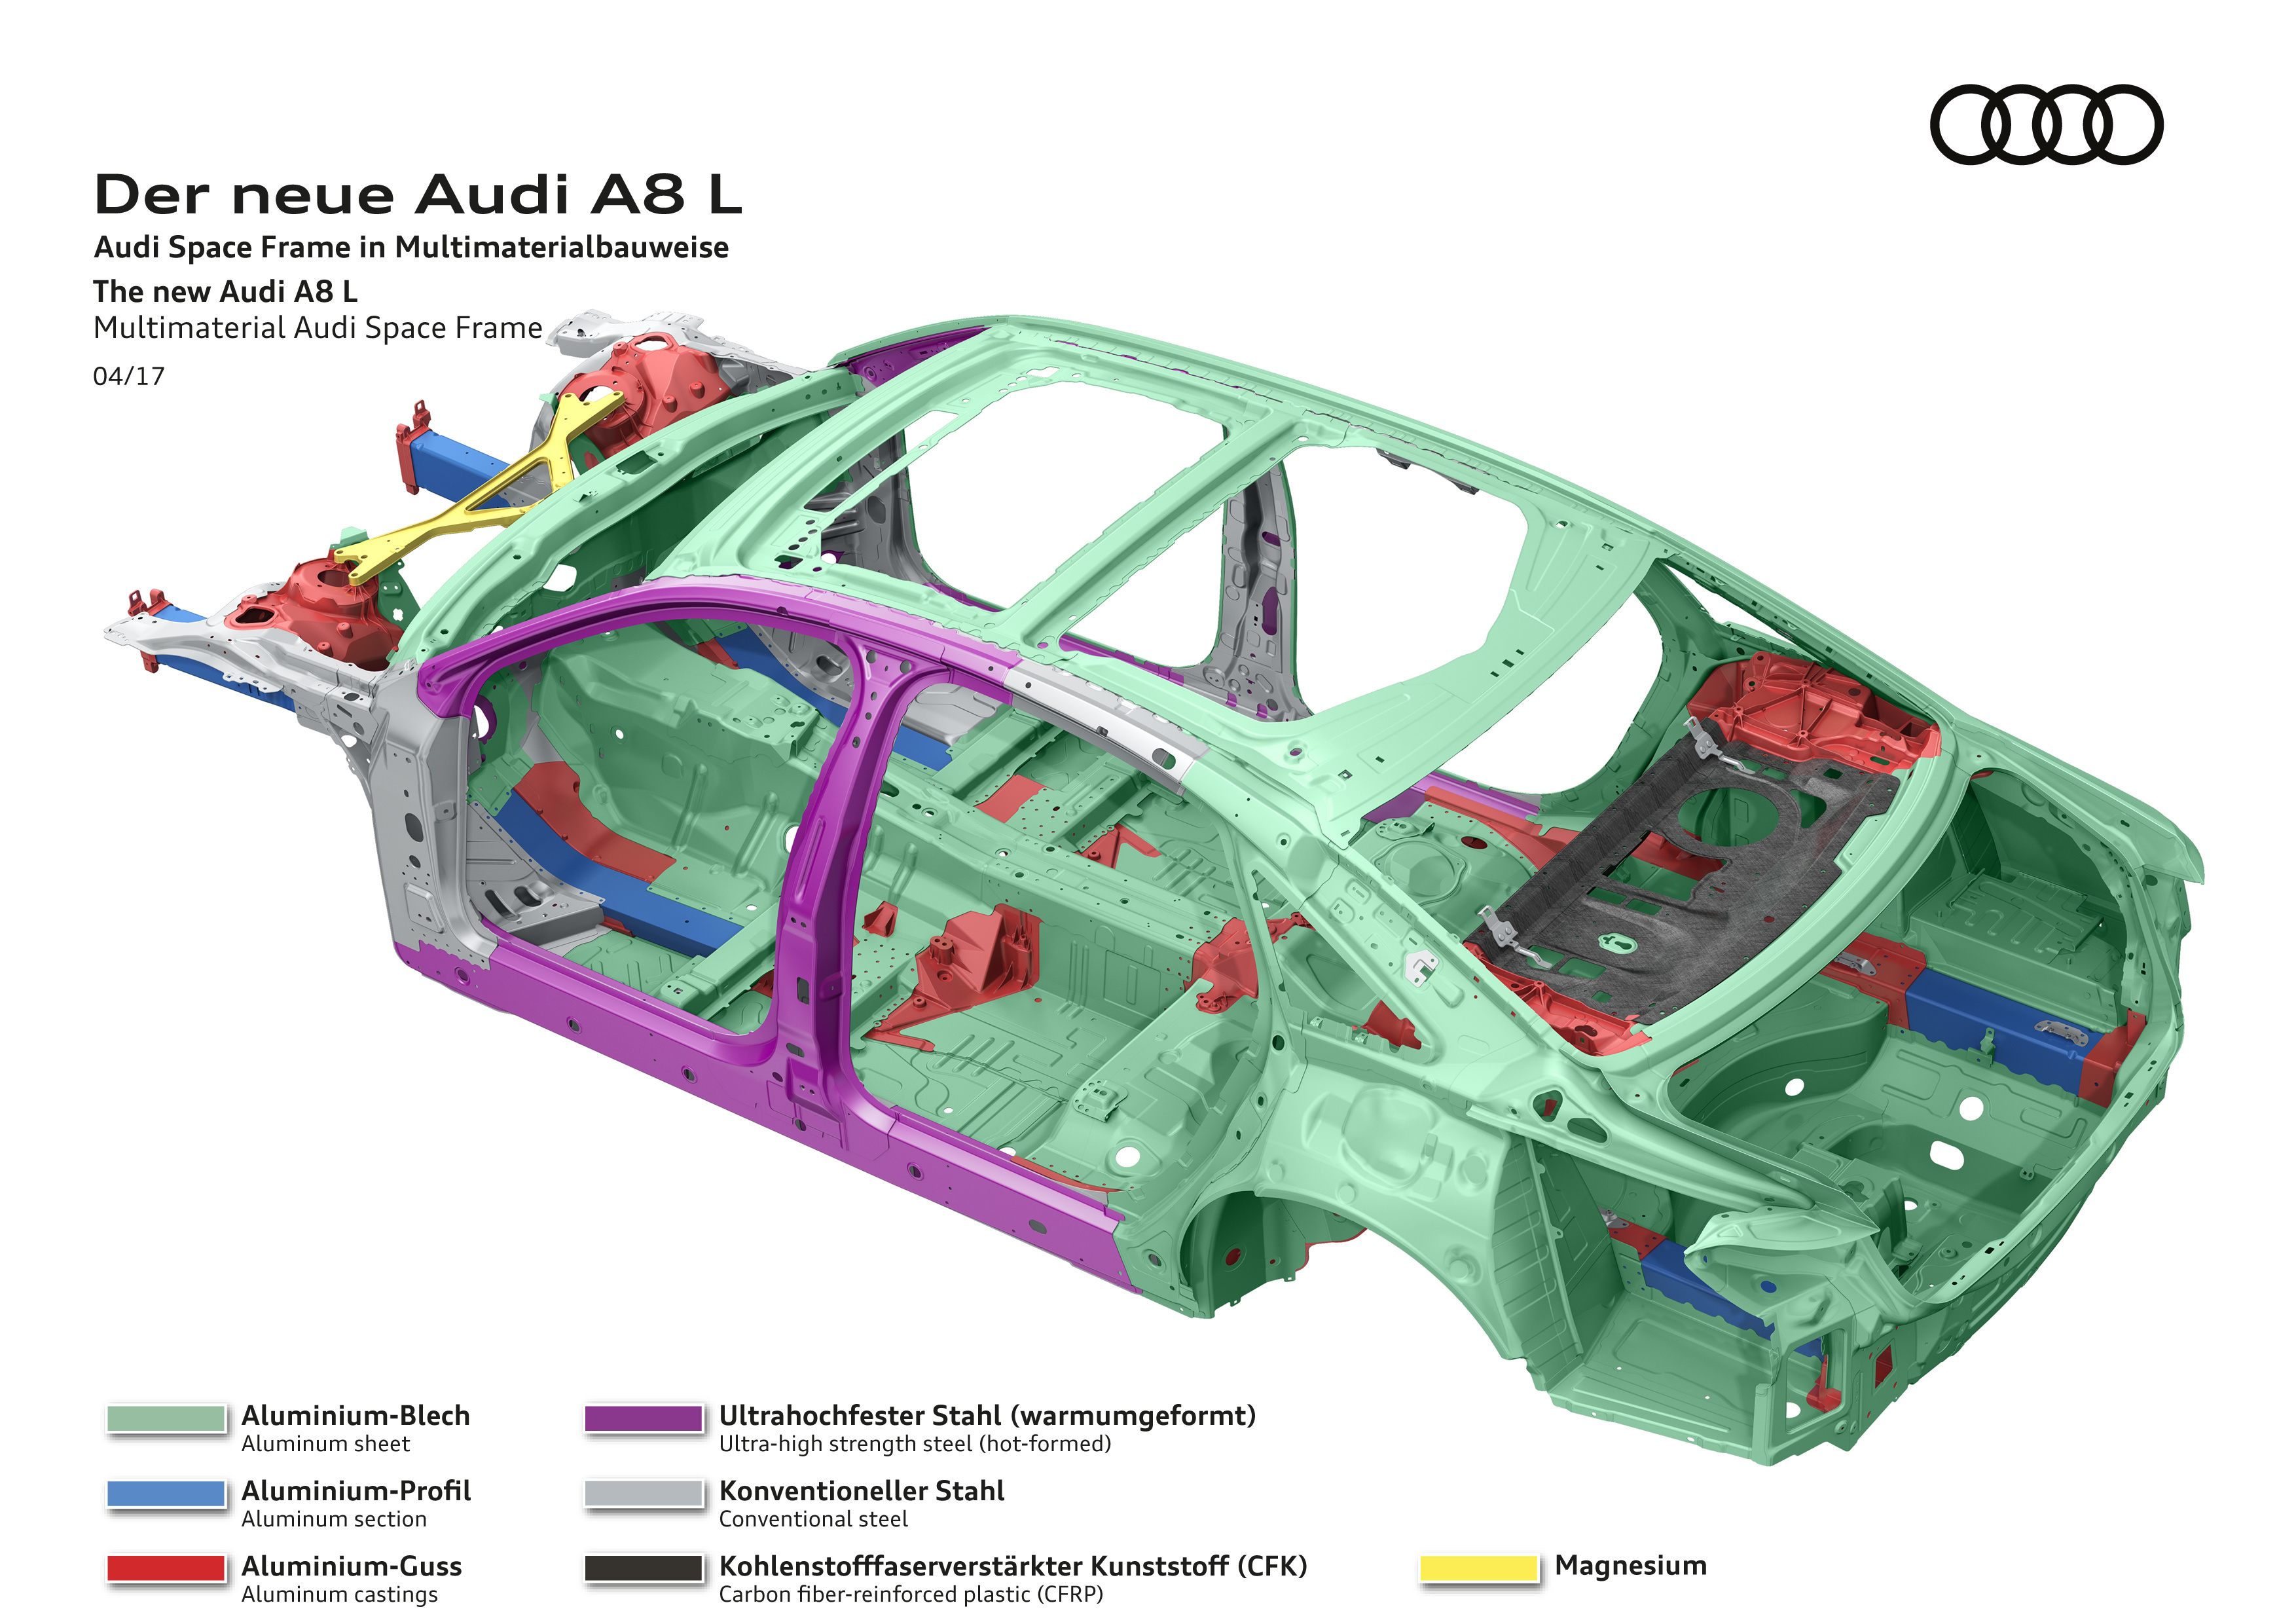 Multimaterial Audi Space Frame